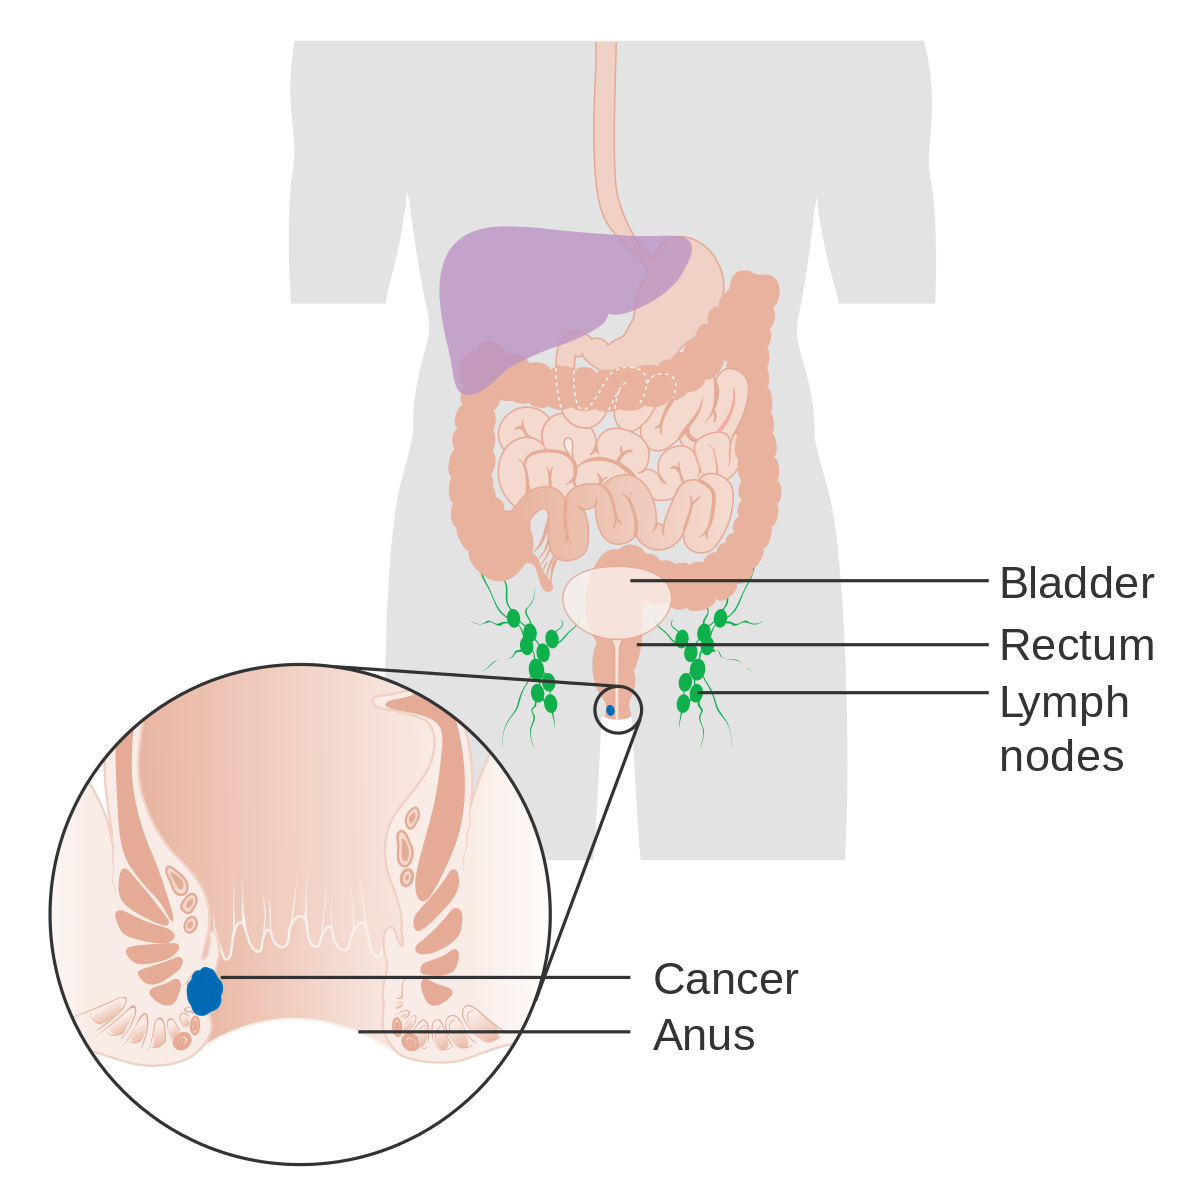 Hpv rarely causes cancer Can hpv cause rectal cancer. hhh | Cervical Cancer | Oral Sex